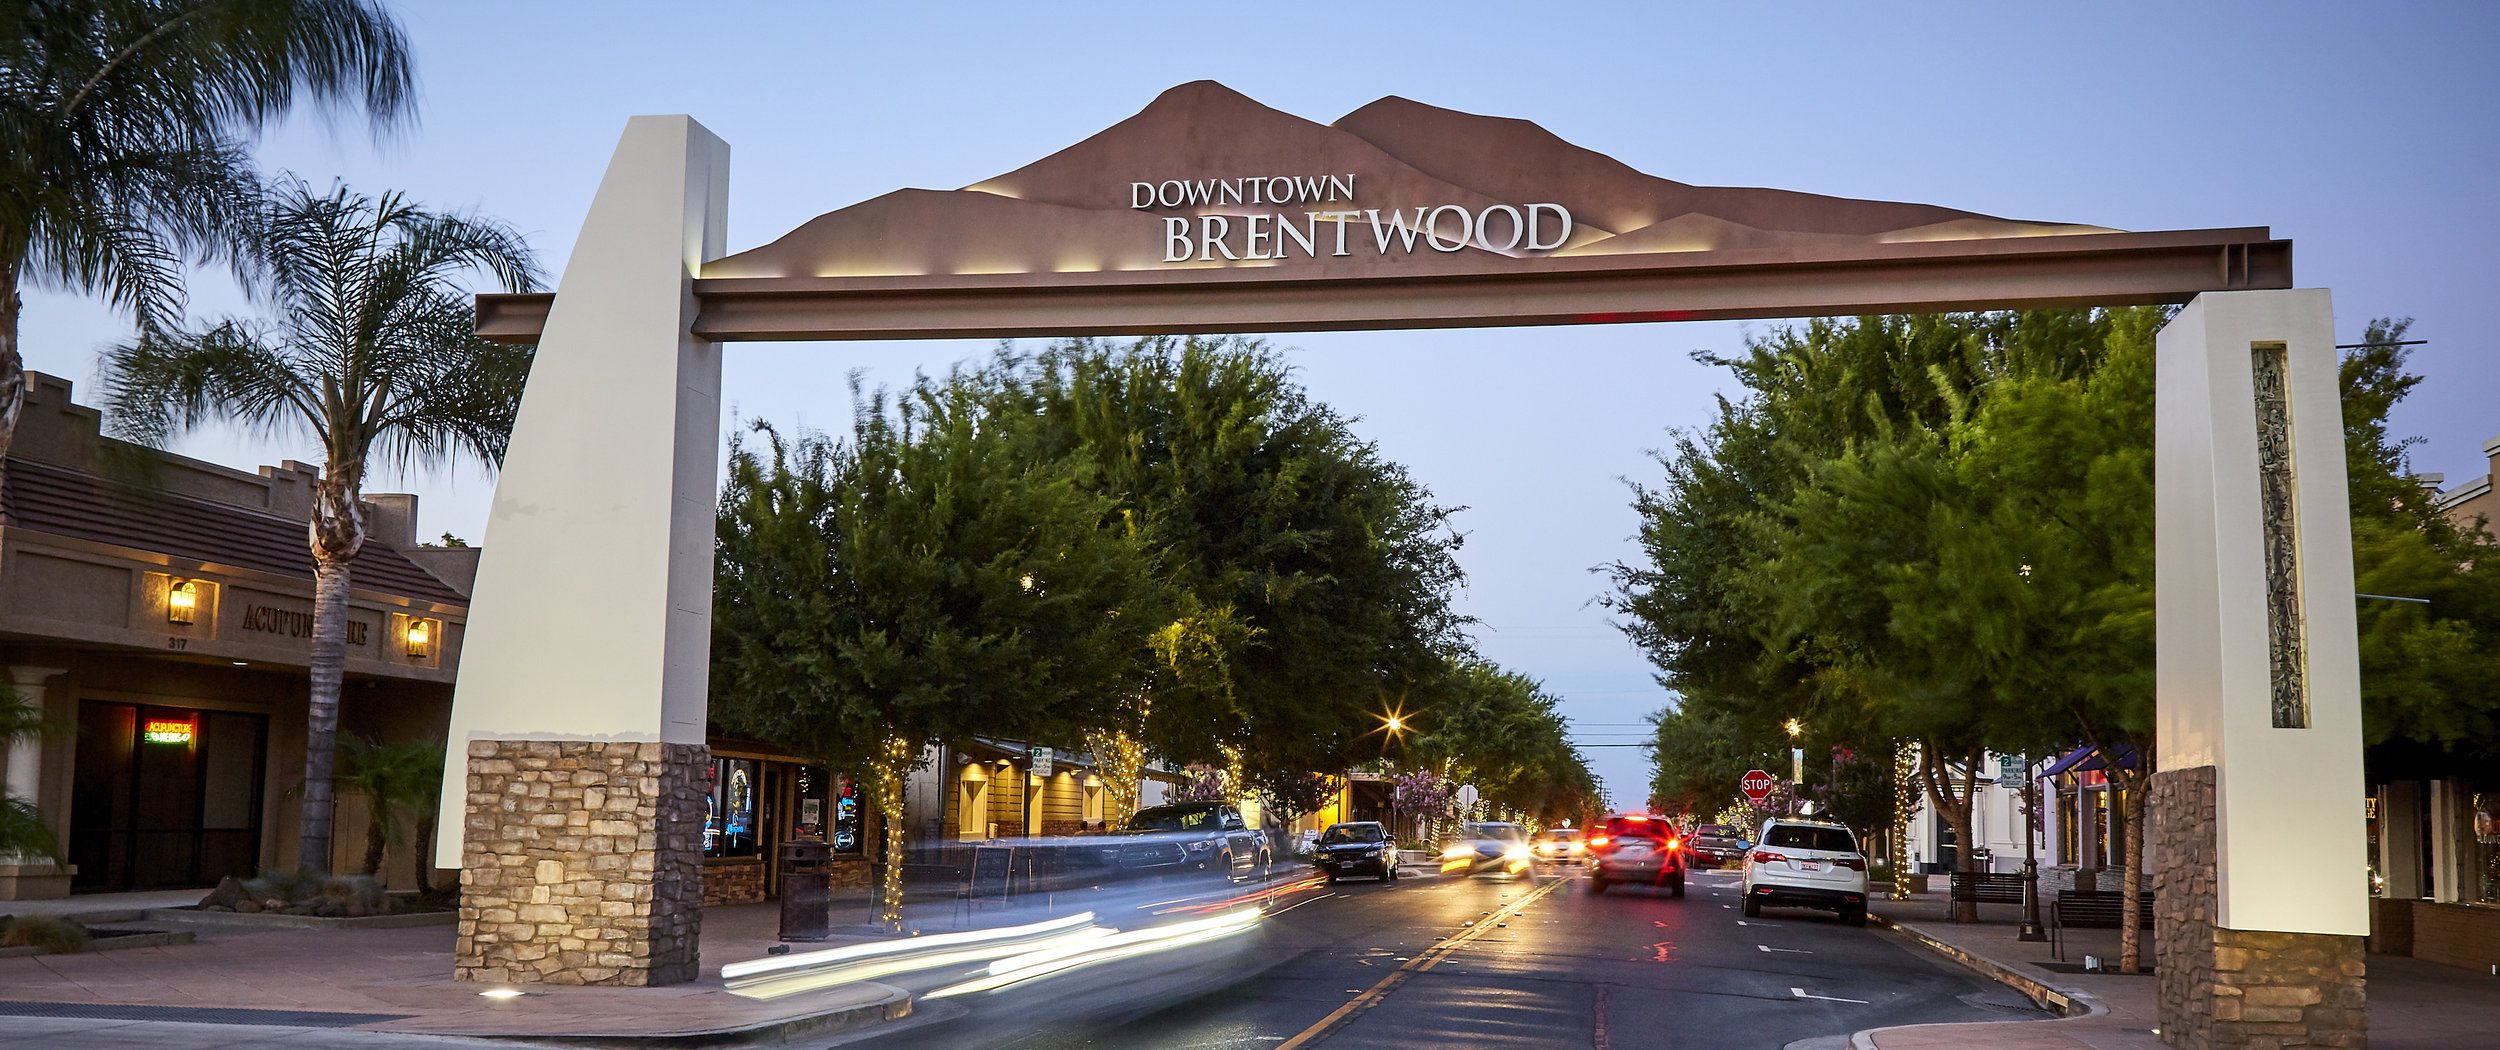 DowntownBrentwood_cropped